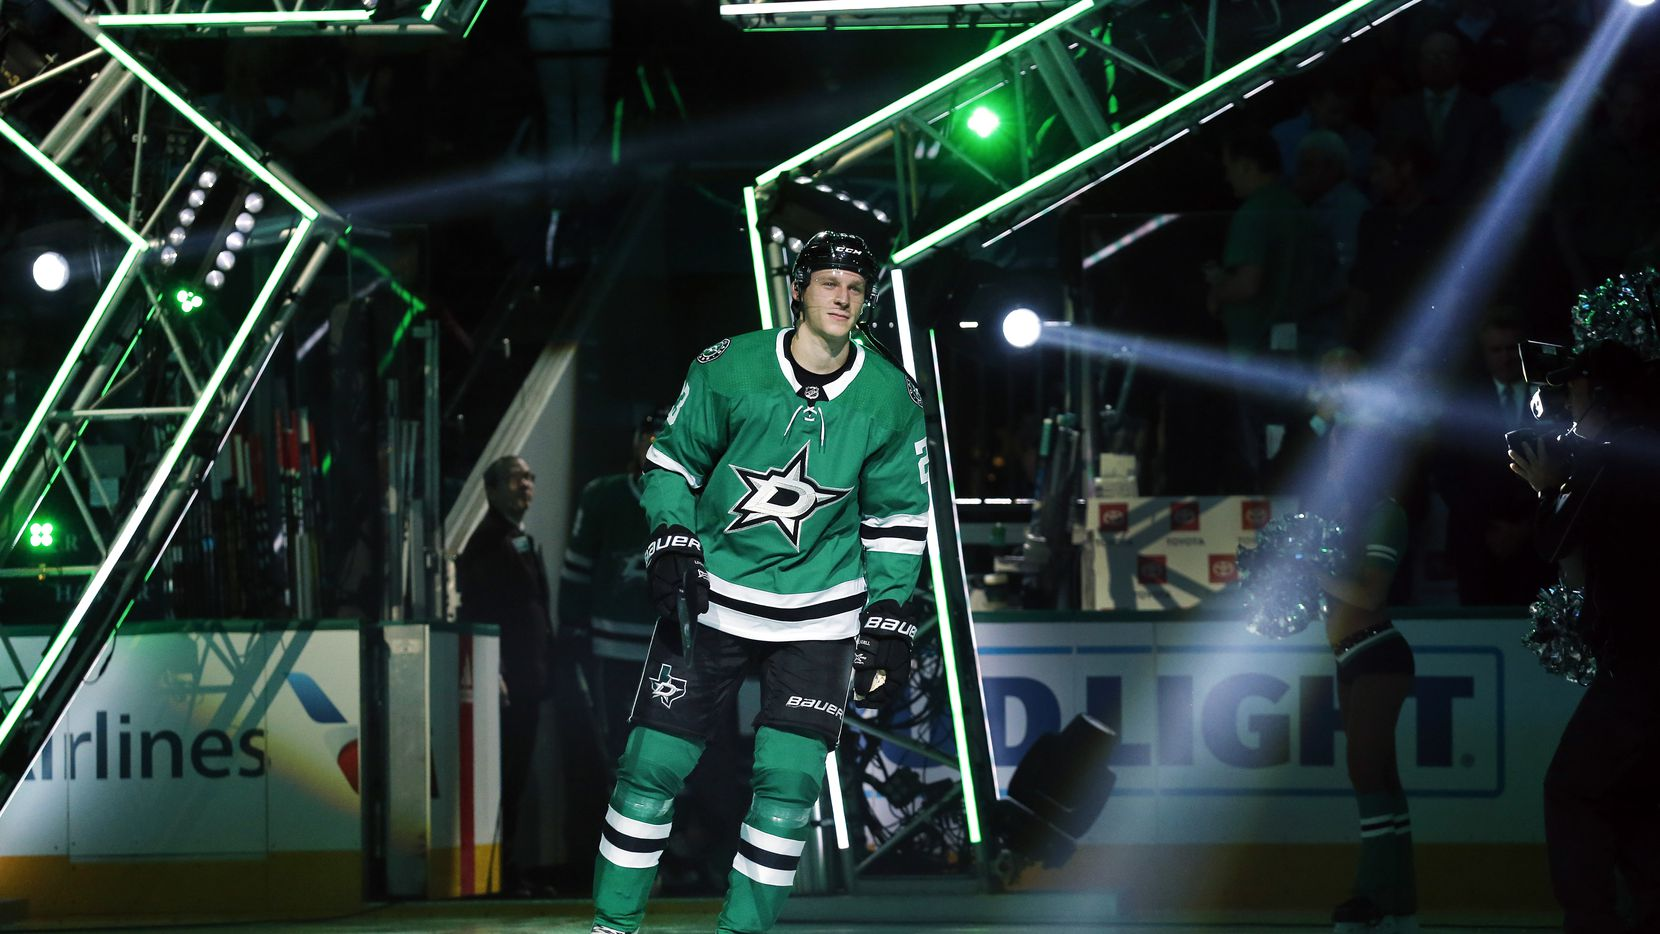 Dallas Stars defenseman Esa Lindell (23) is introduced during the season-opening game at the American Airlines Center in Dallas, Thursday, October 4, 2018. The Stars were facing the Arizona Coyotes. (Tom Fox/The Dallas Morning News)